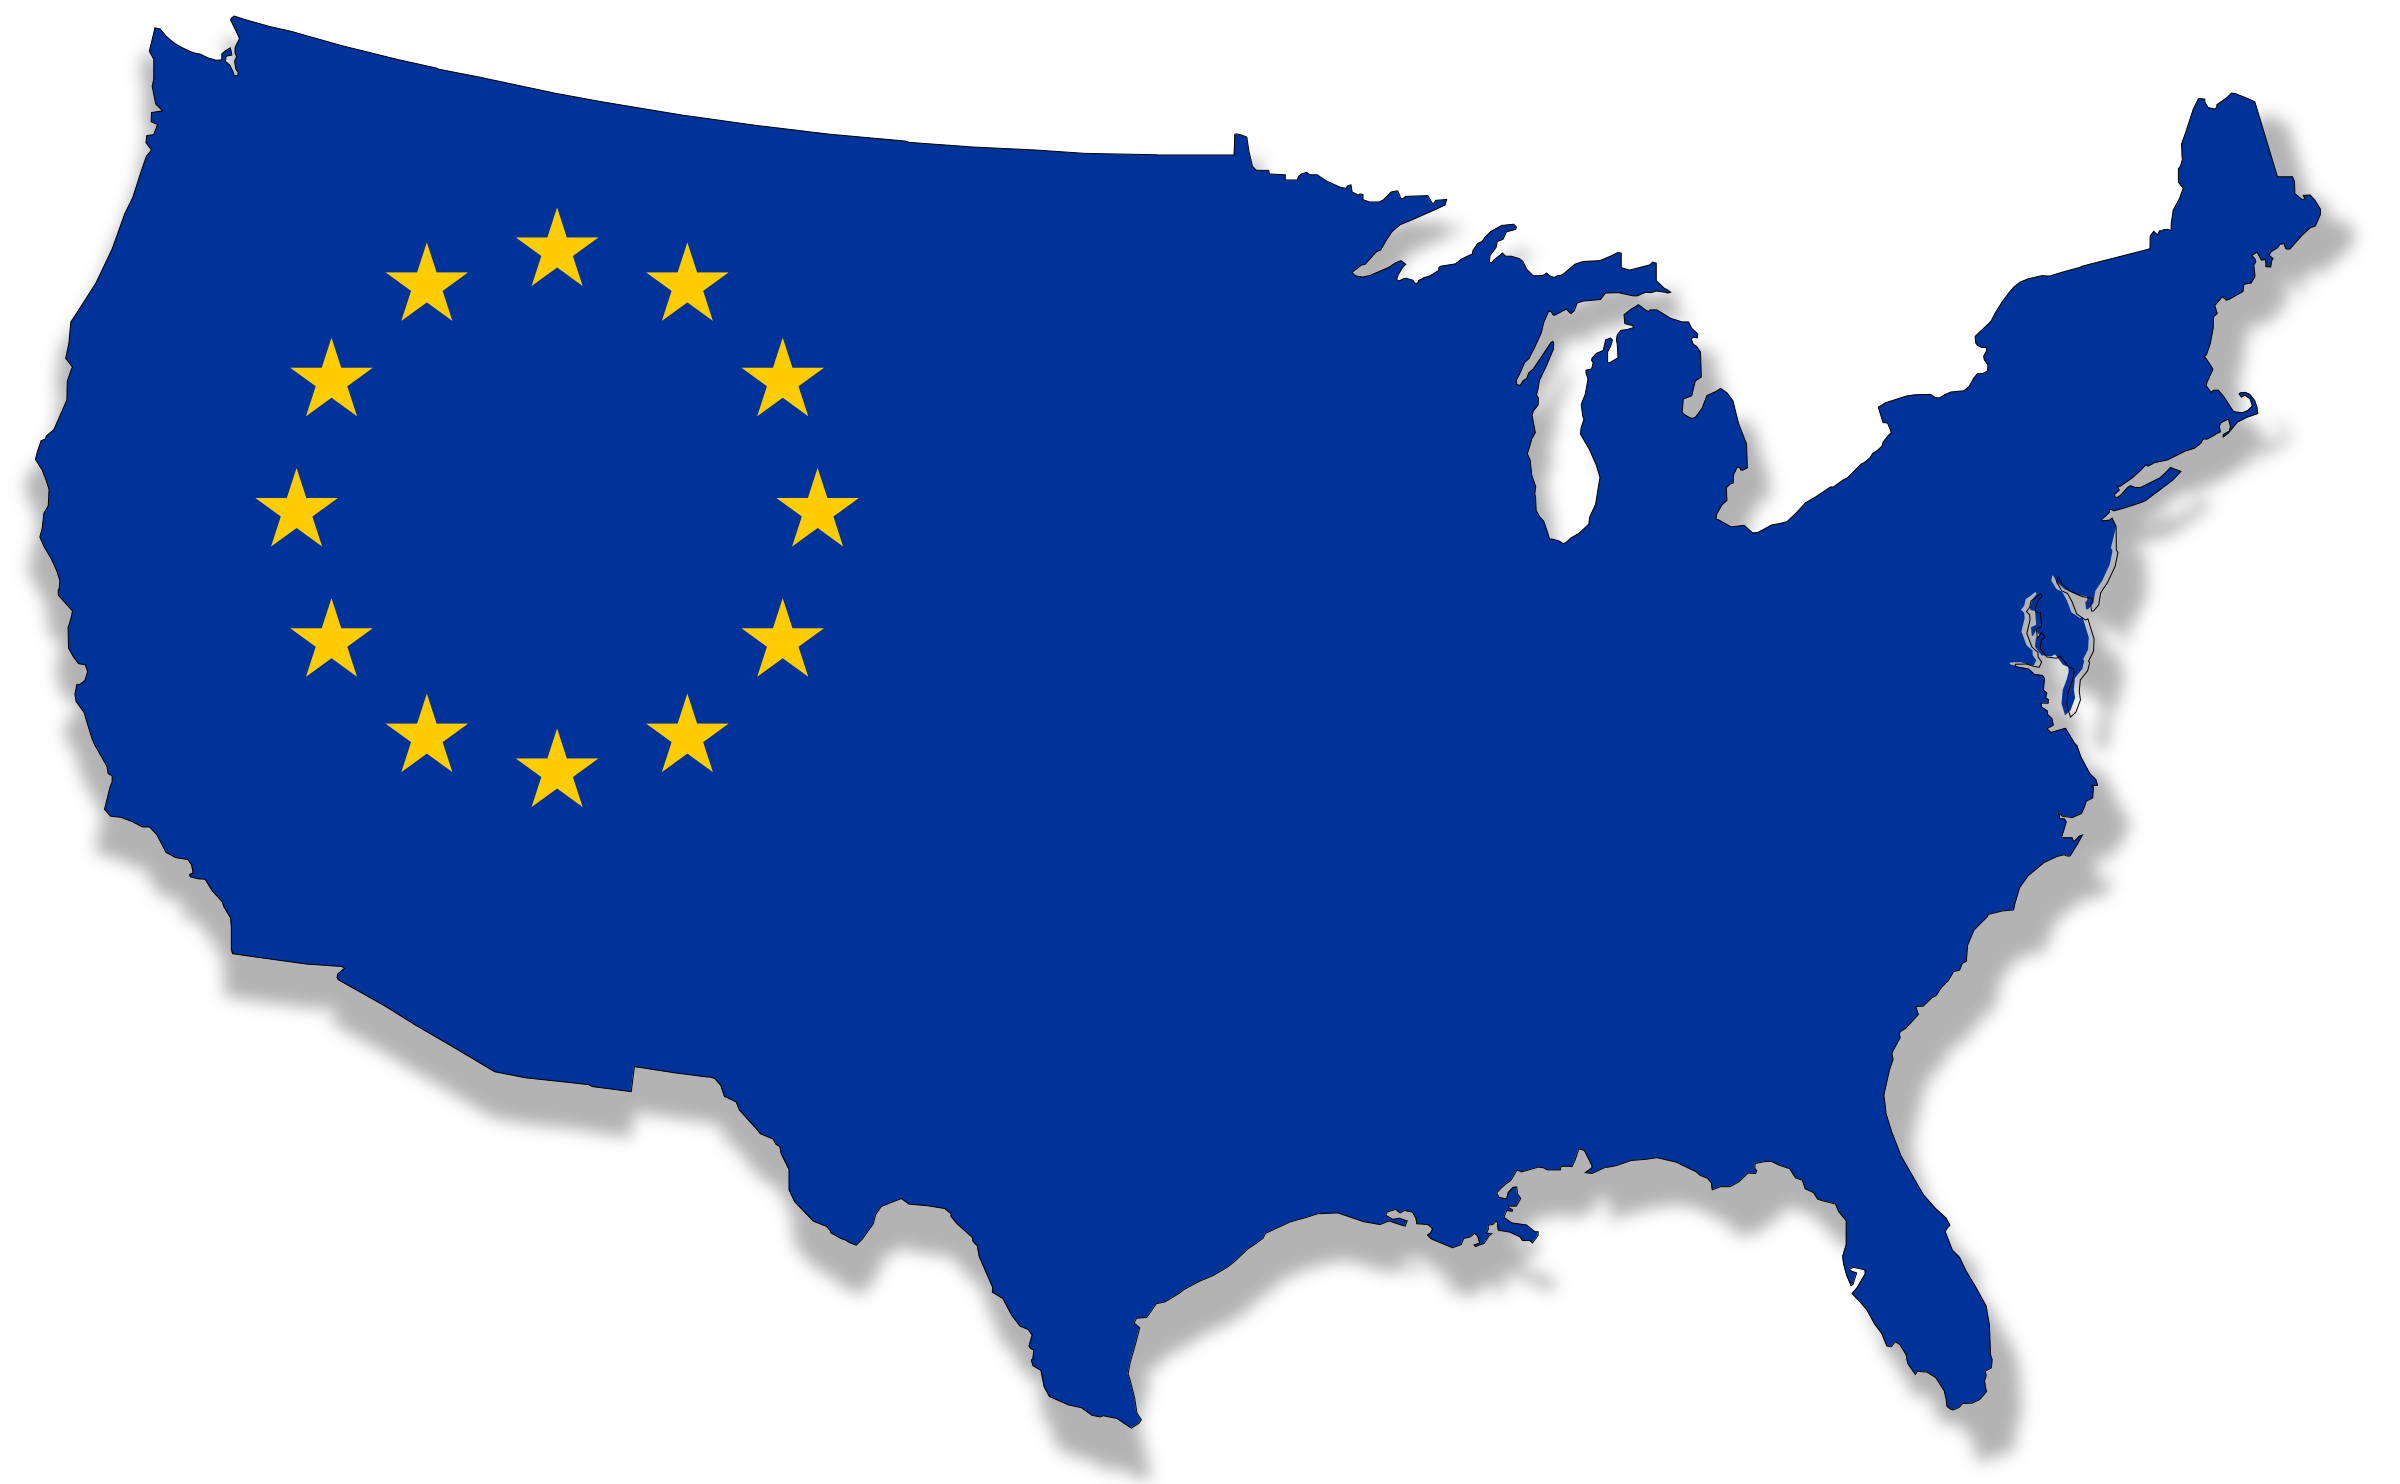 Clipart u s map svg free Clipart - US-Europe flag map svg free